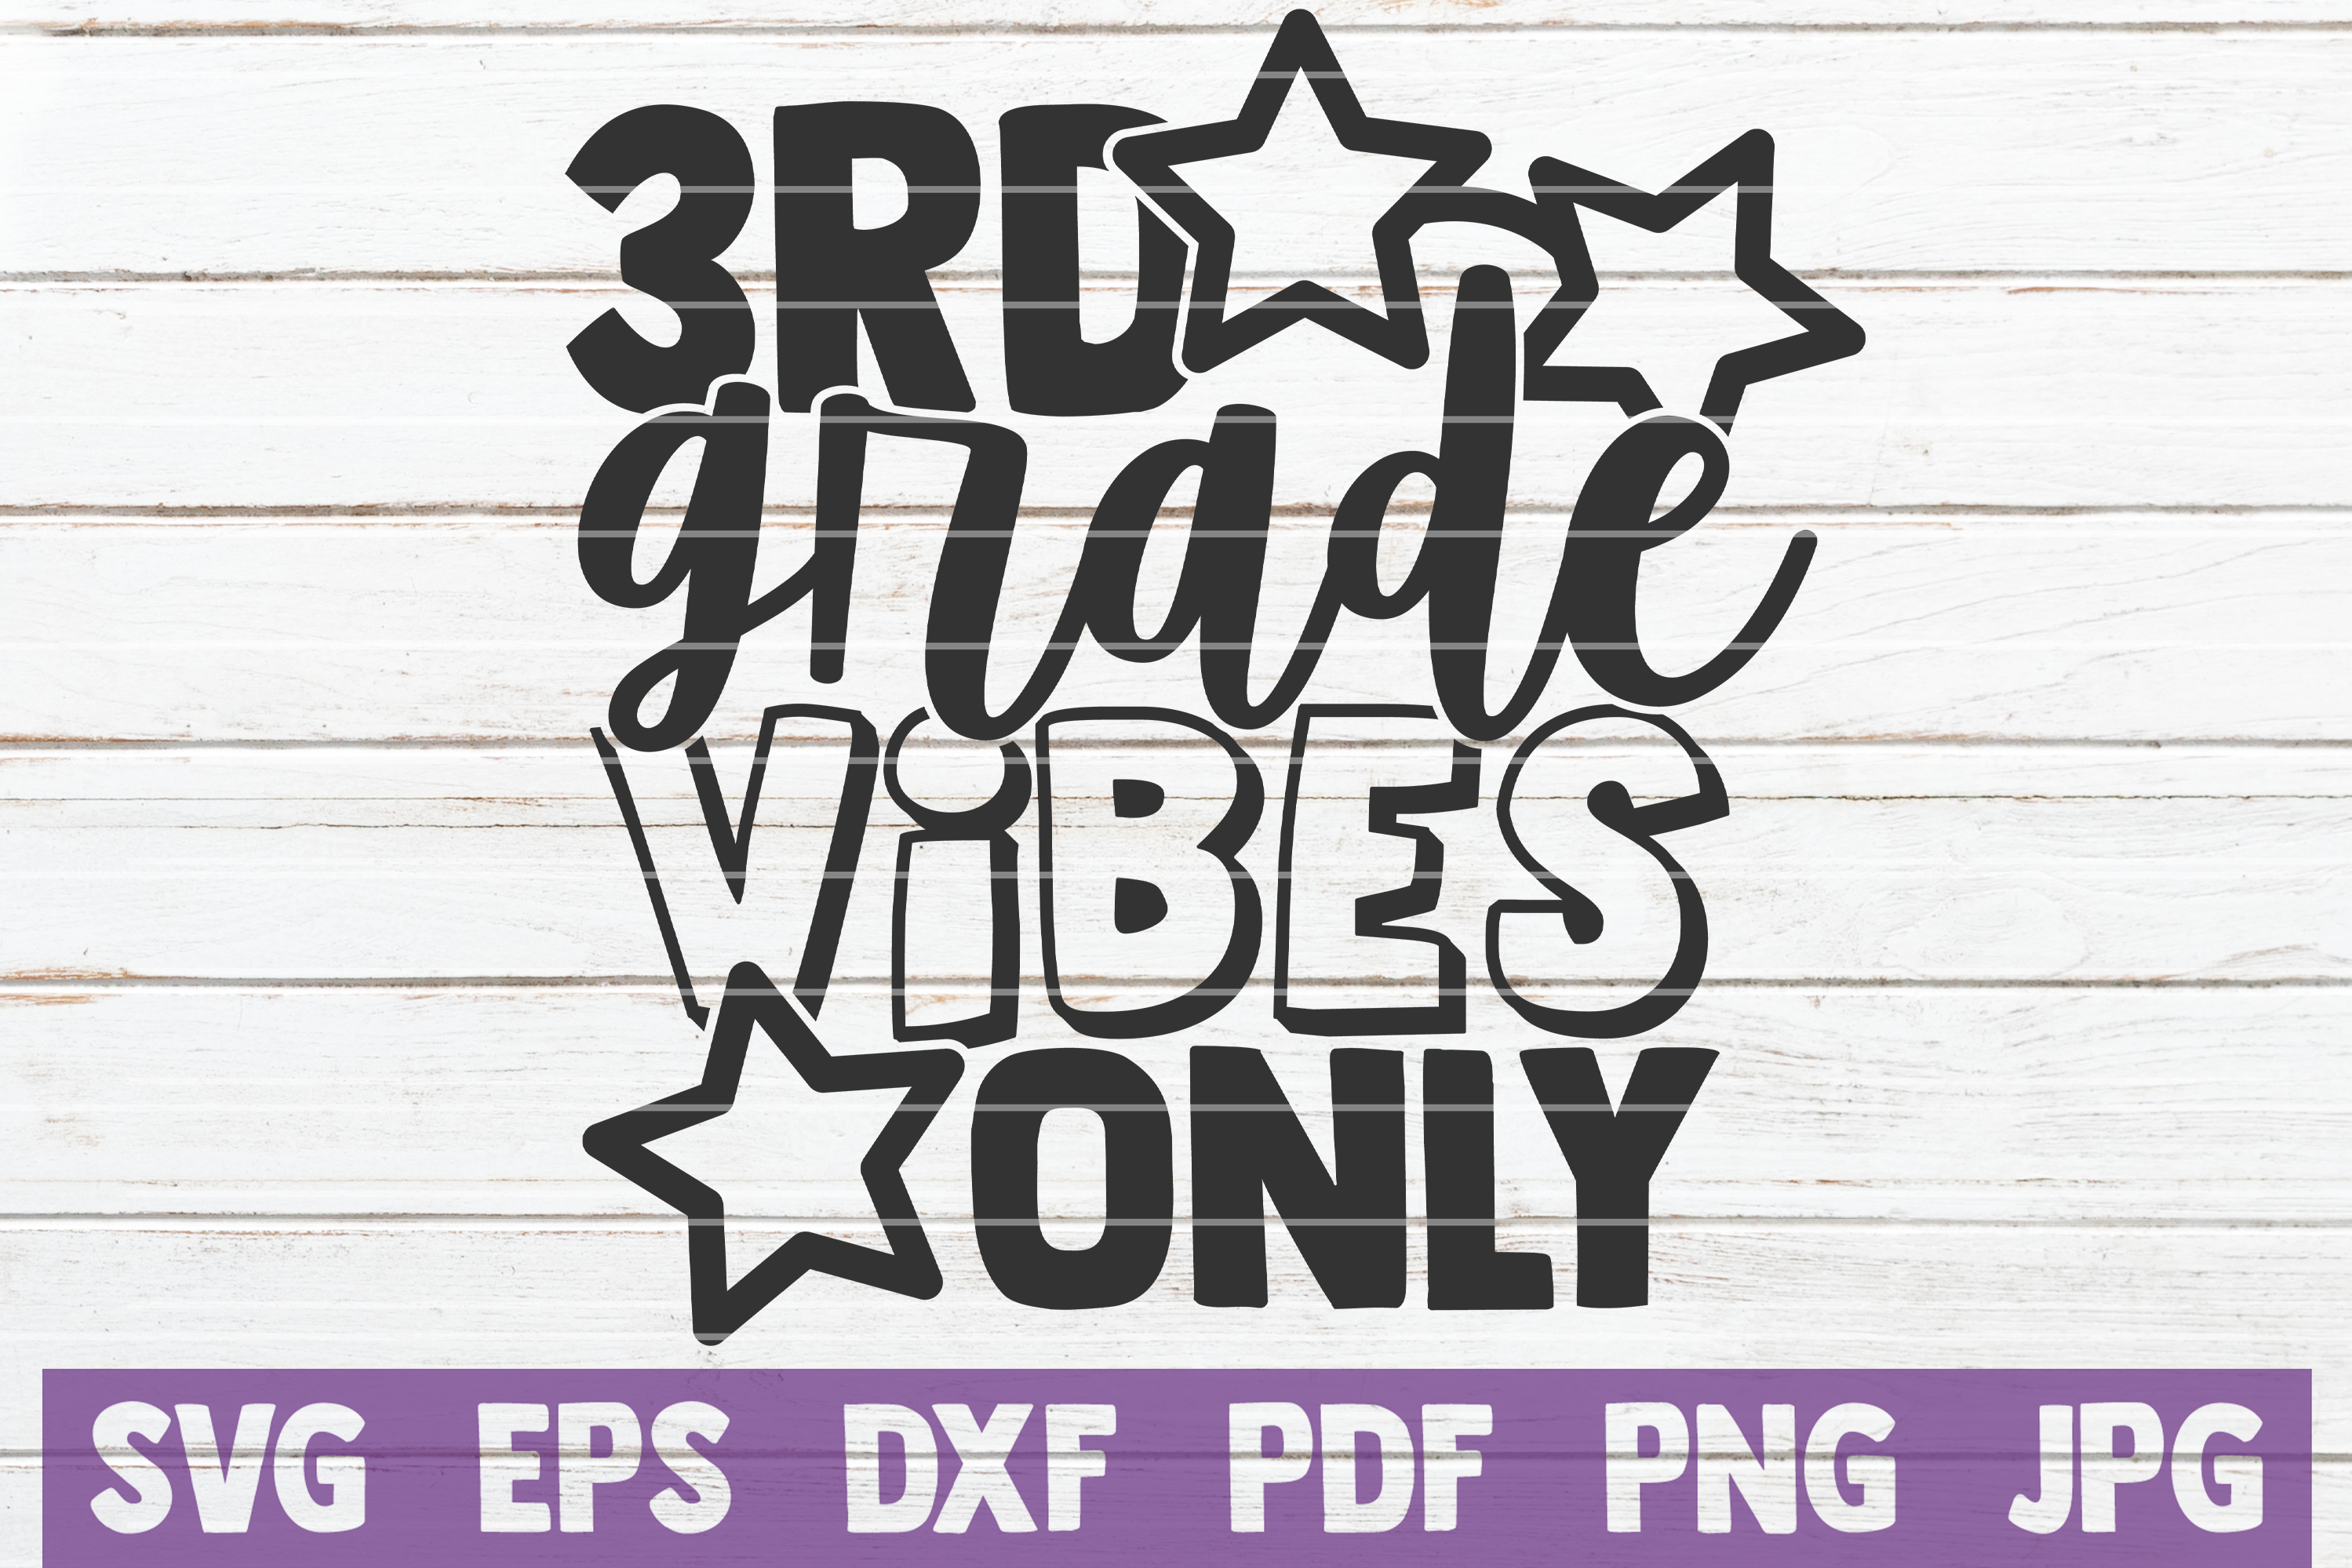 Download Free 3rd Grade Vibes Only Graphic By Mintymarshmallows Creative Fabrica for Cricut Explore, Silhouette and other cutting machines.